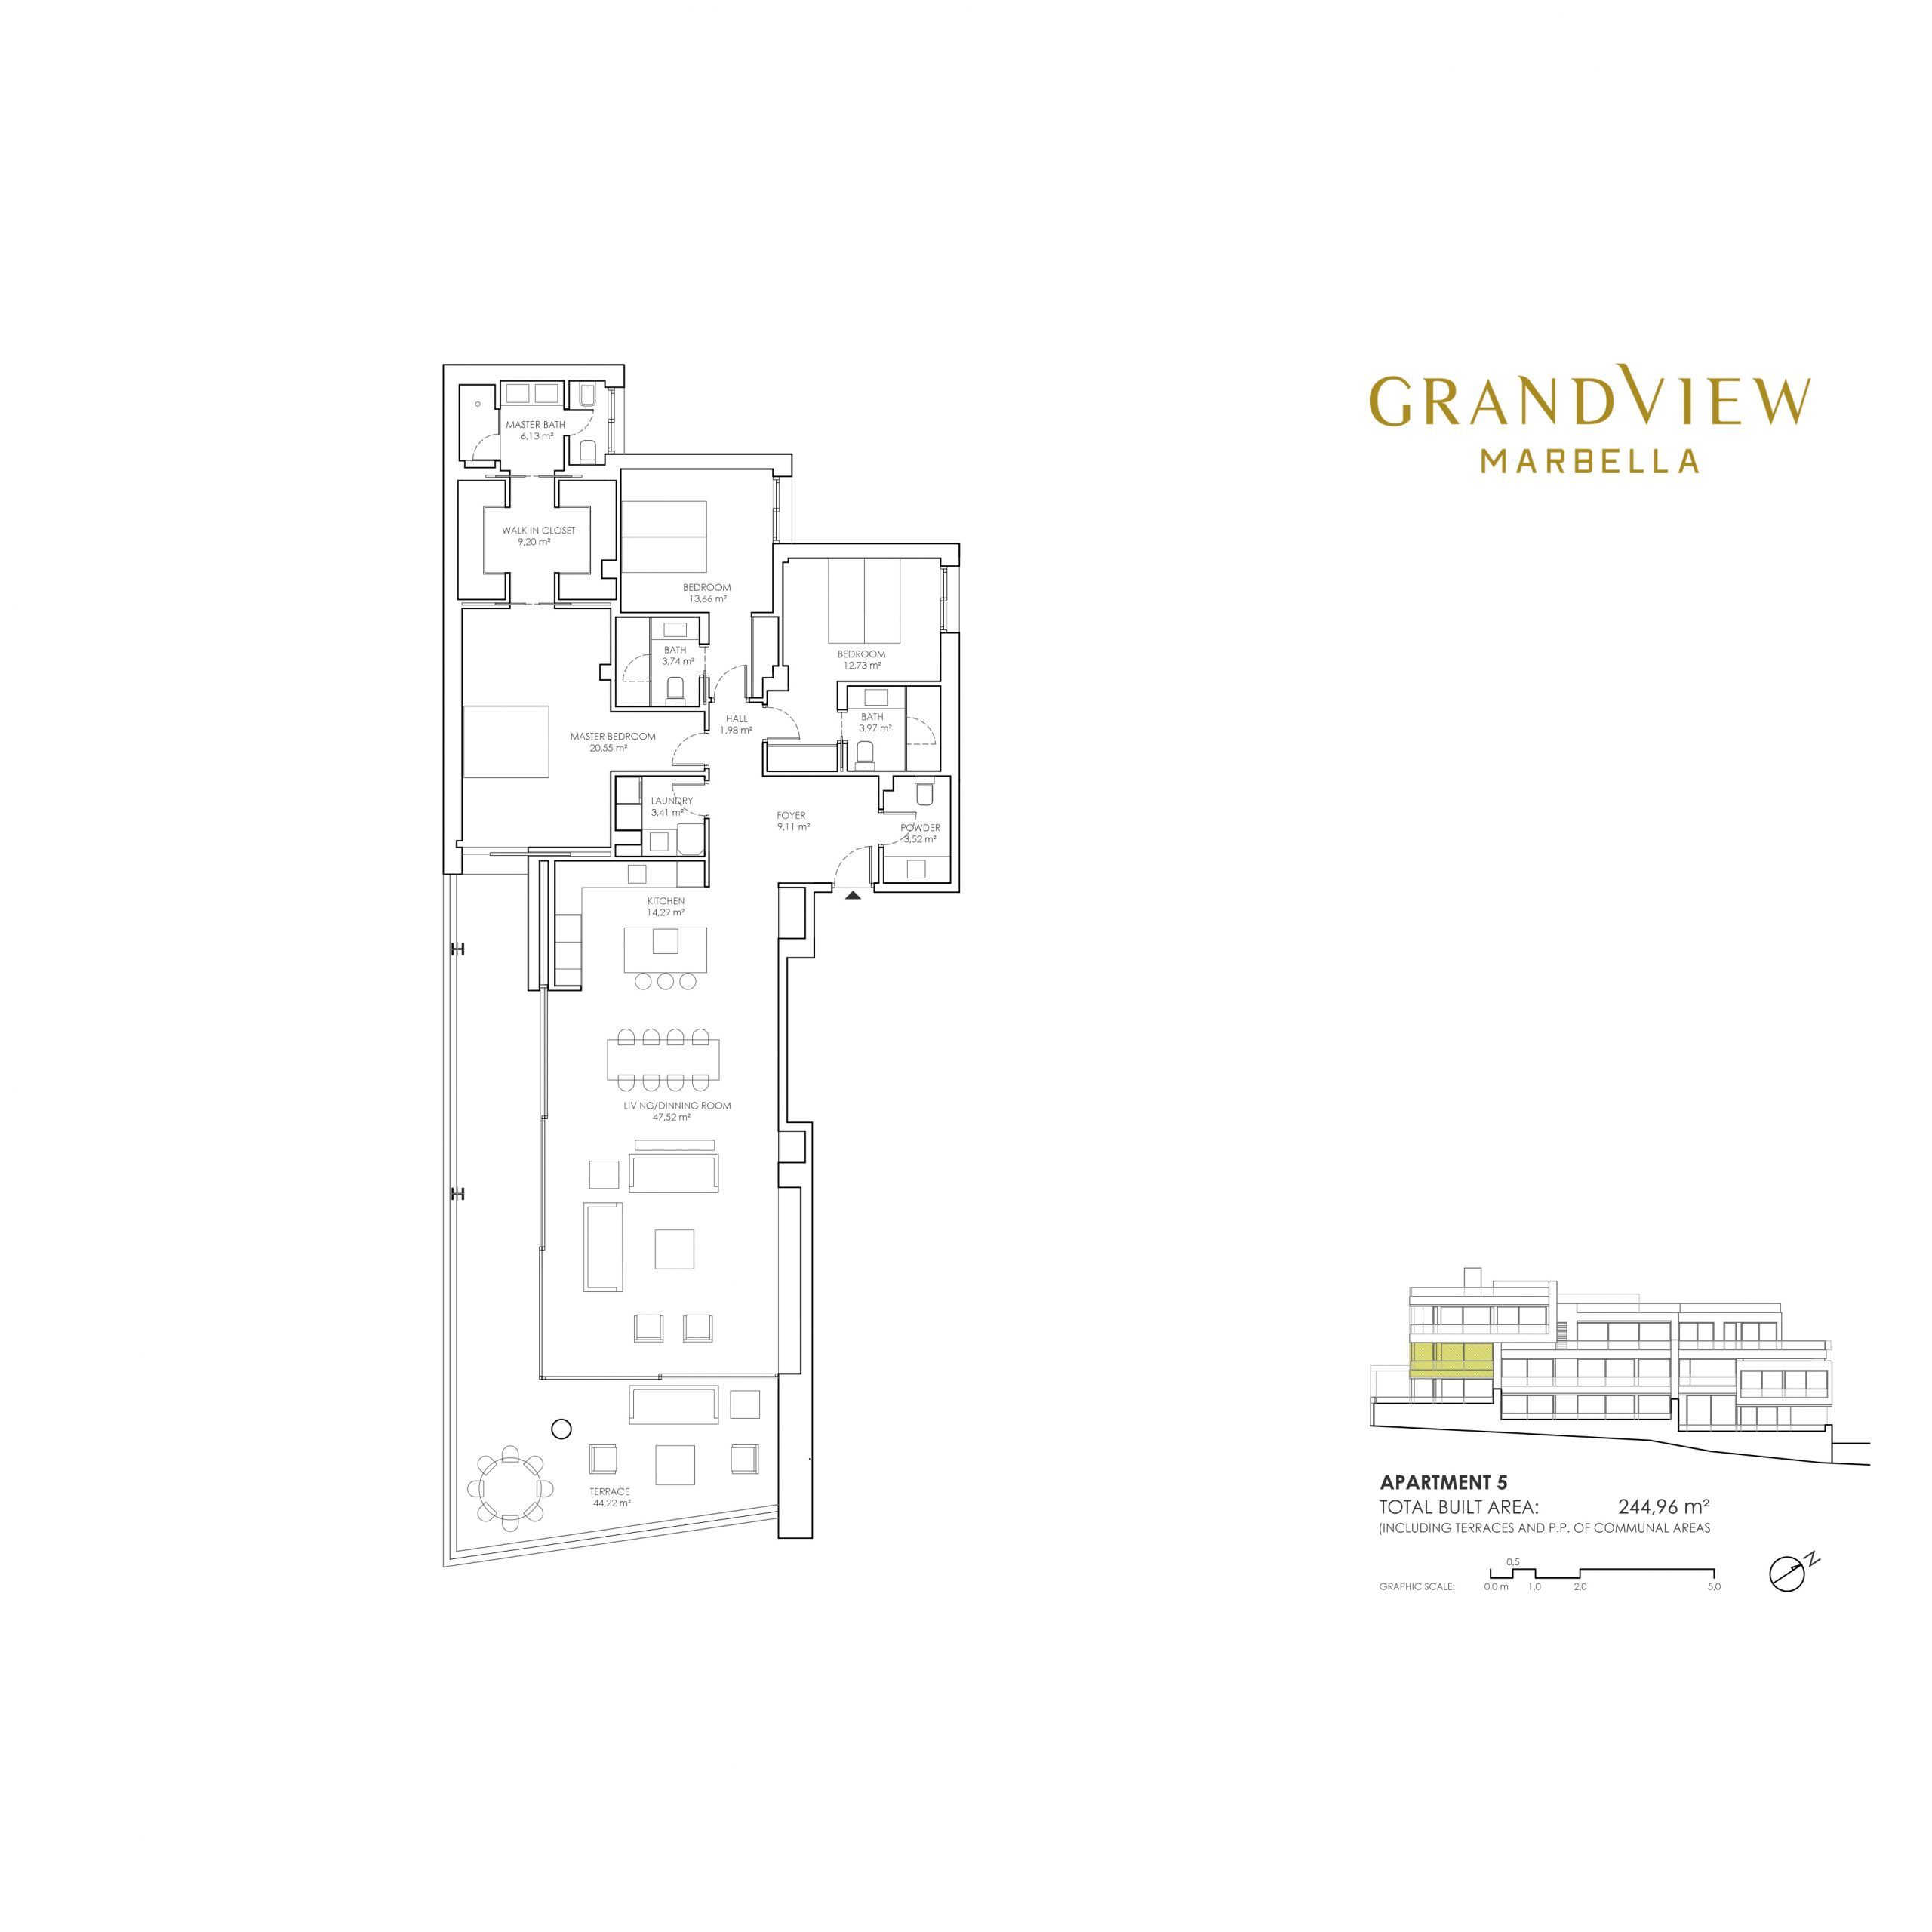 Grand View Marbella Apartment 5 floorplan